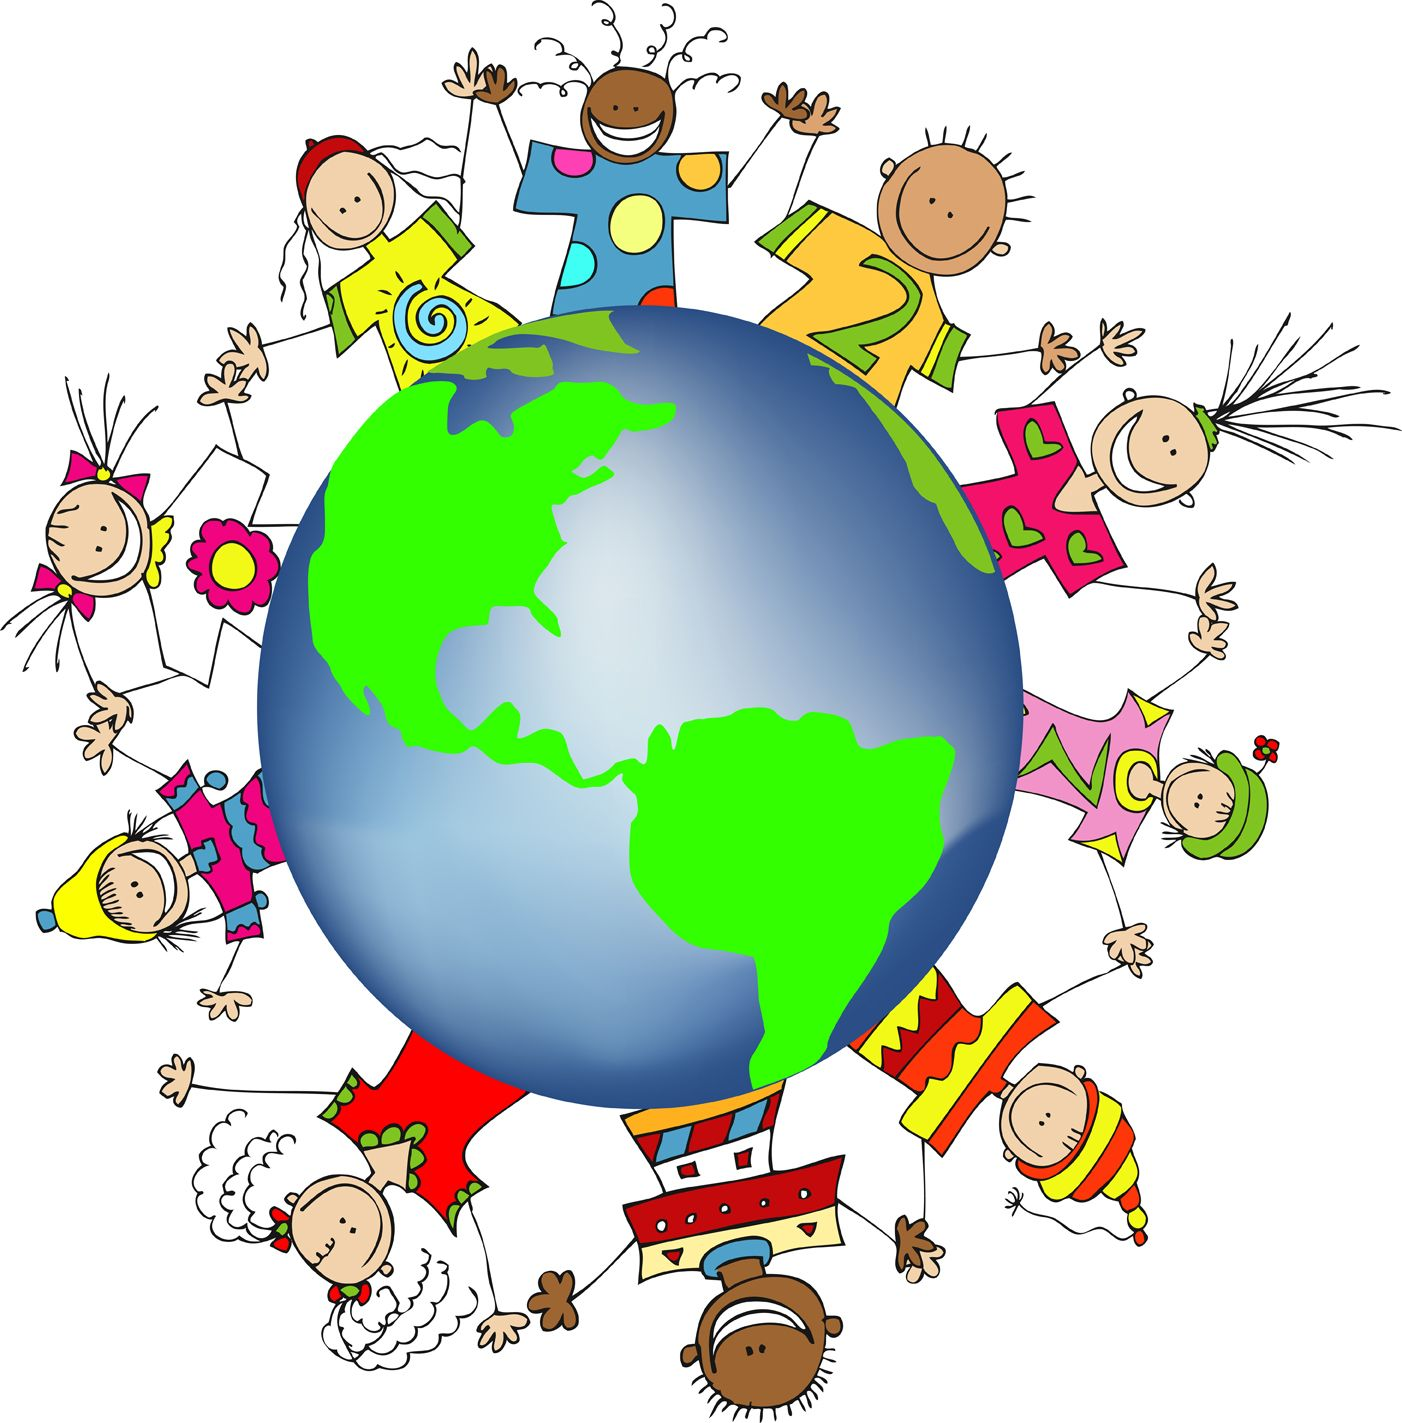 hight resolution of kids world hands friends networks globe illustration small free